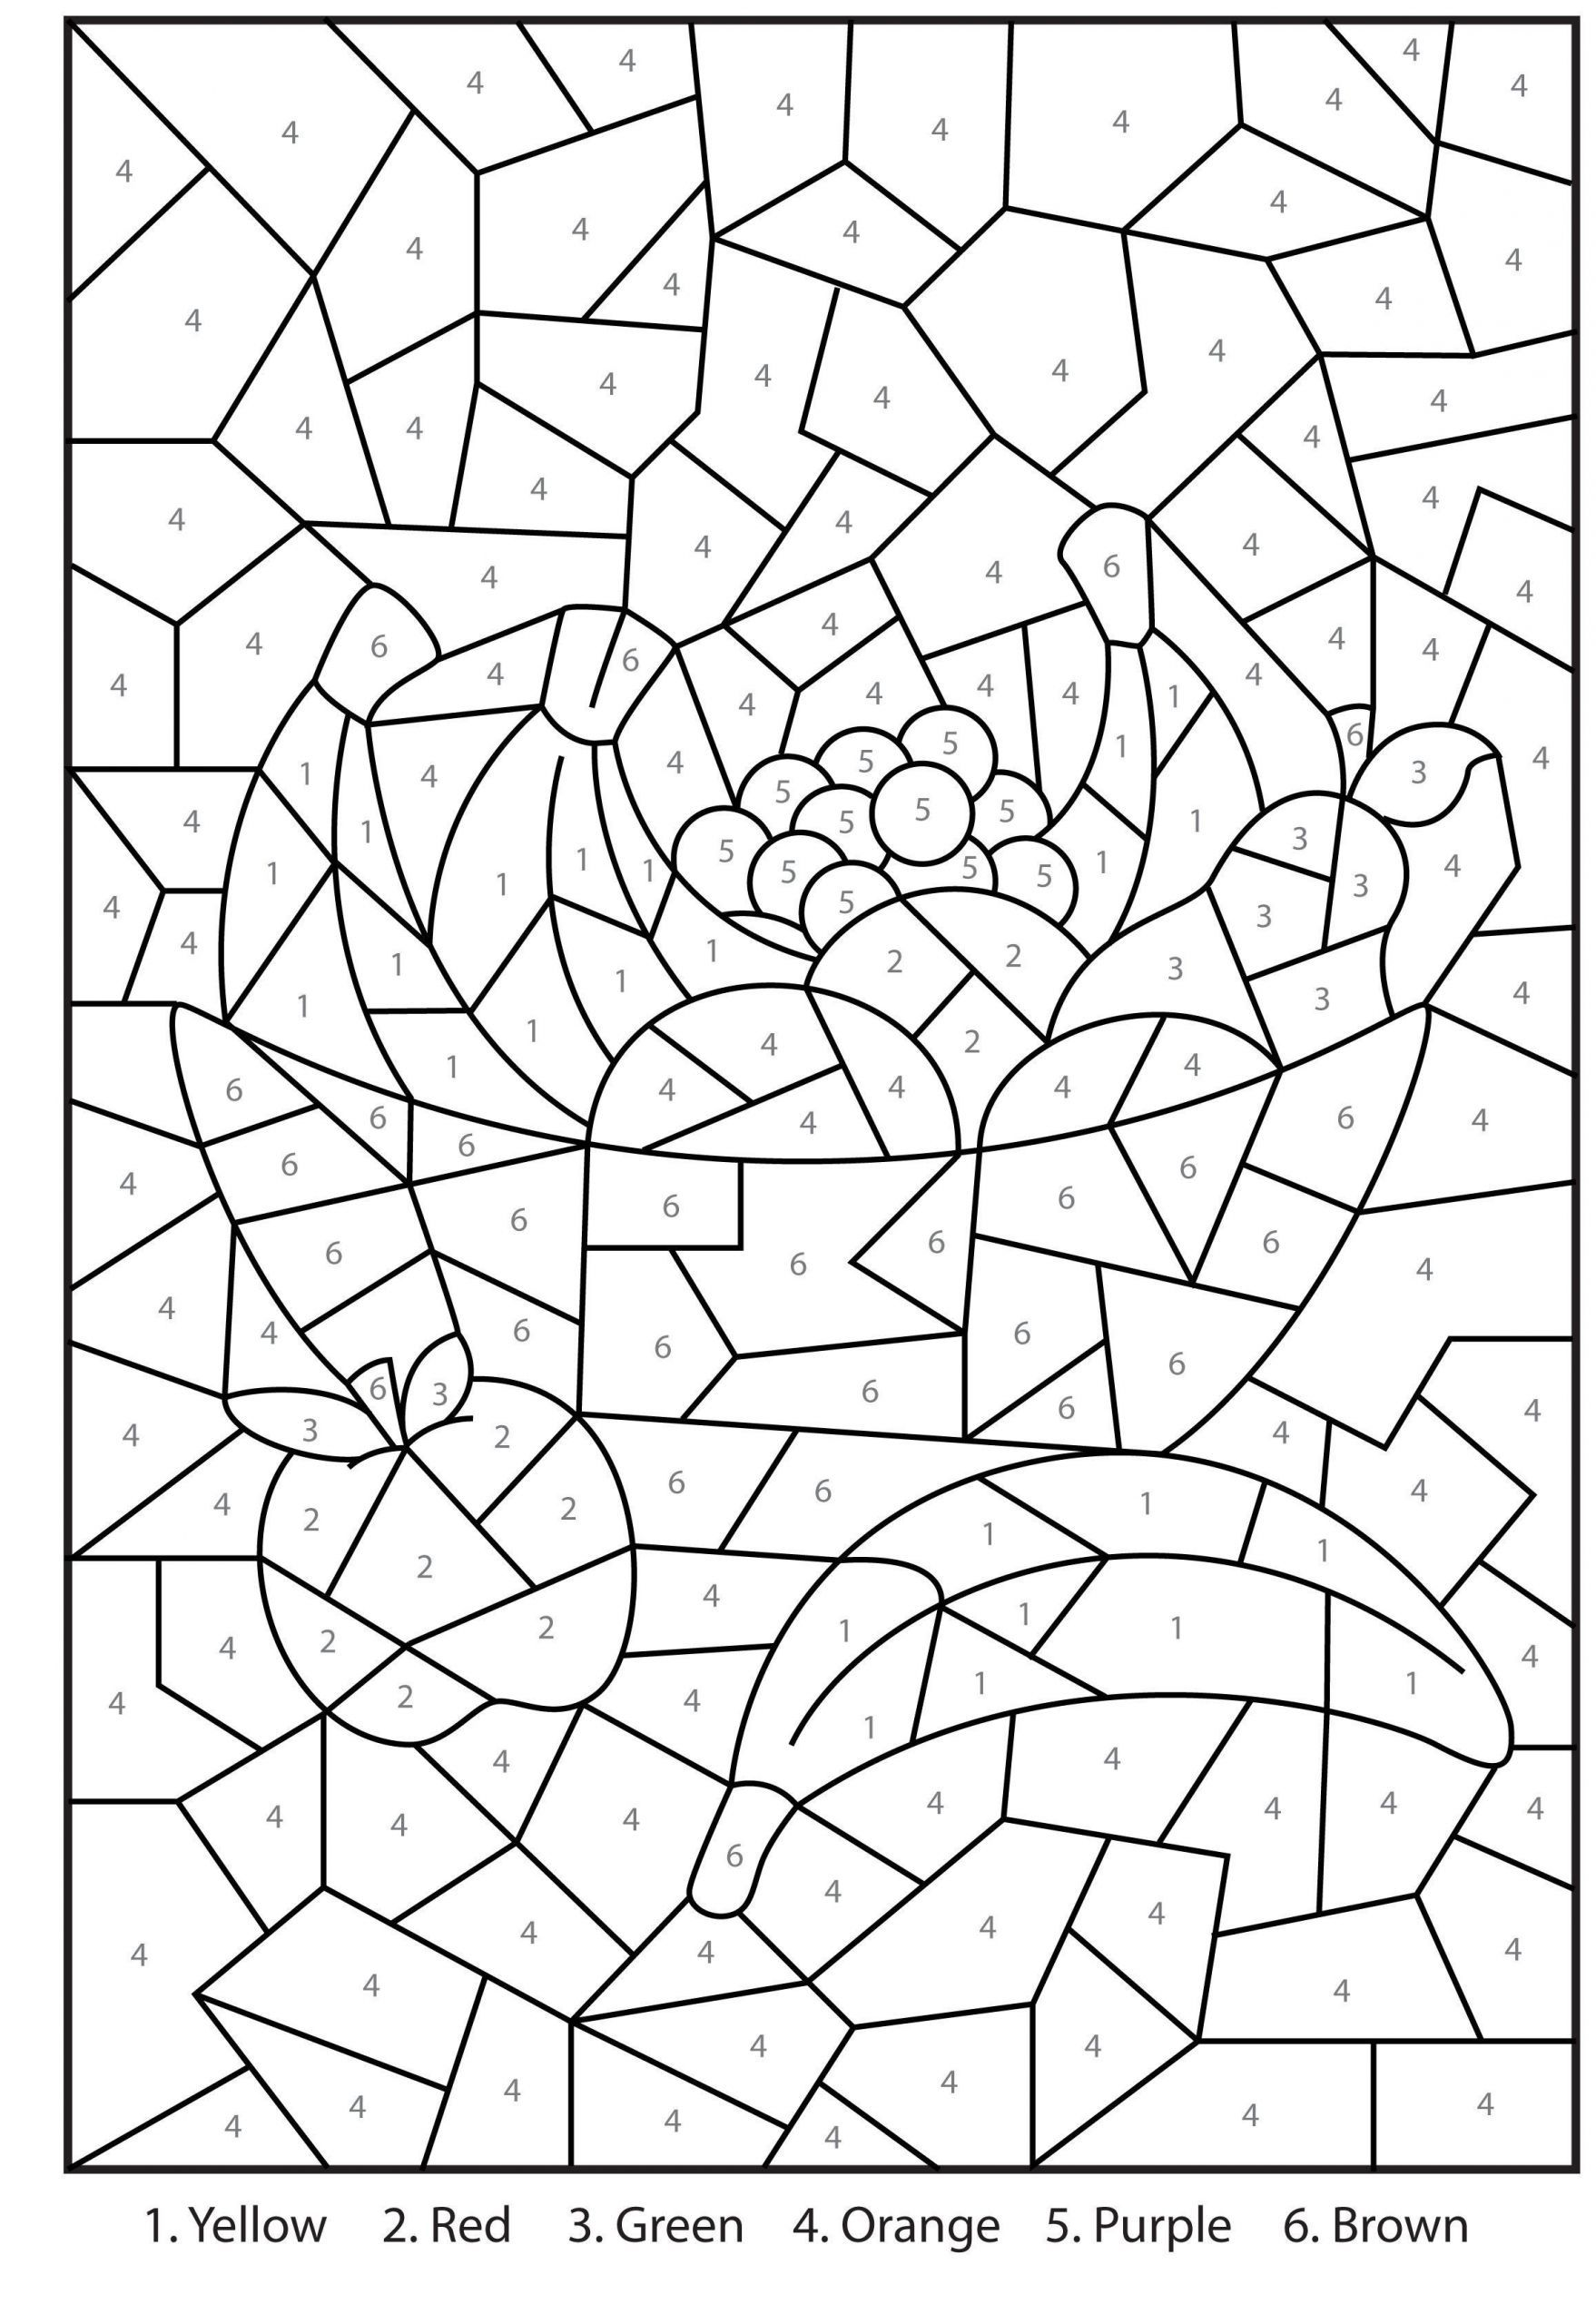 5 Middle School Math Coloring Worksheets In